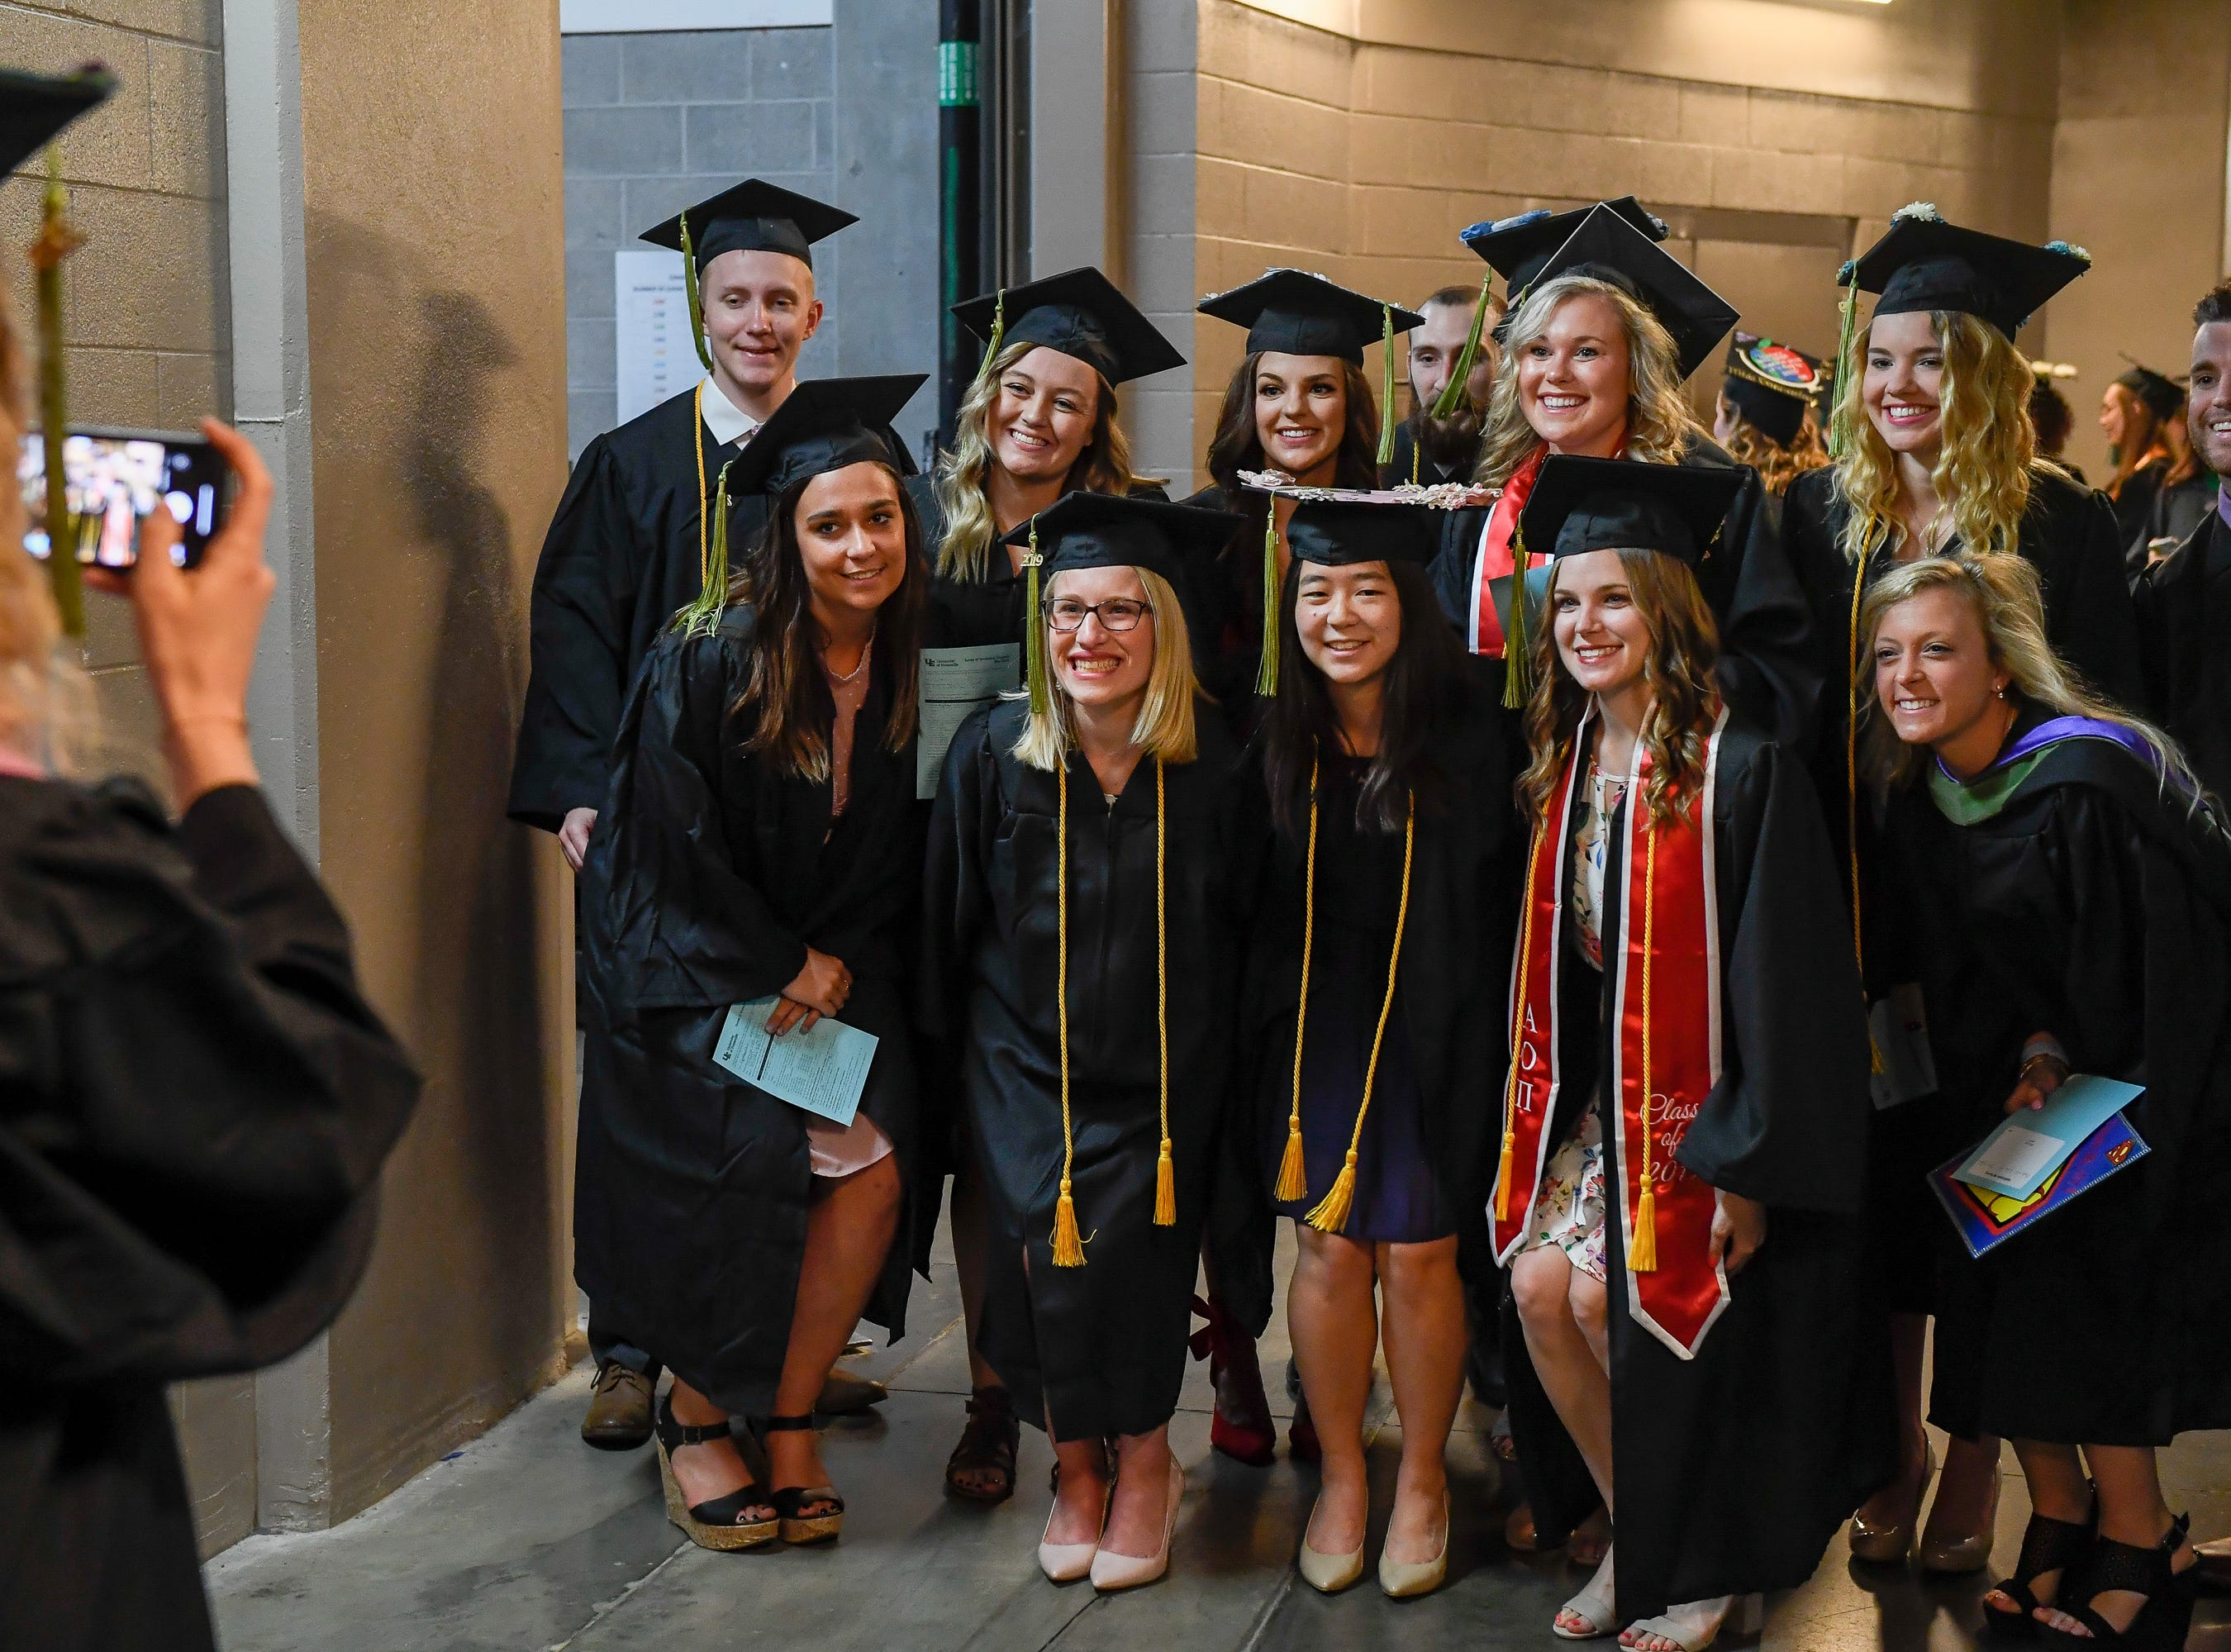 Graduates taking photos in the tunnel before the University of Evansville's 161st commencement ceremony held at the Ford Center Saturday, May 11, 2019.